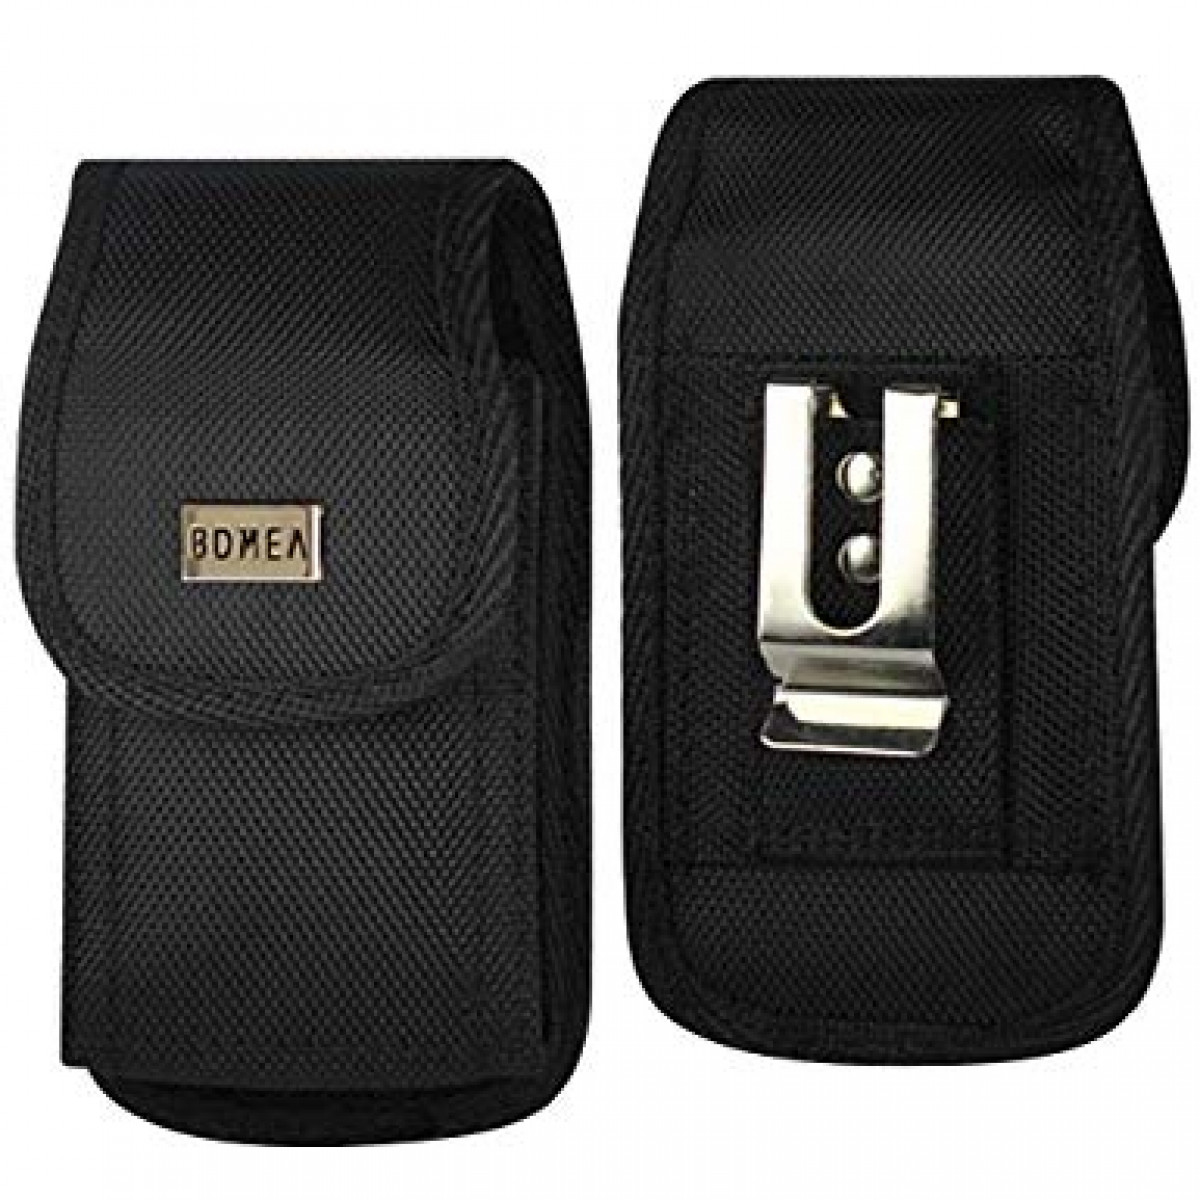 online store 69d01 a51fa Bomea iPhone Xs Holster, iPhone X Belt Clip Case, Rugged Tactical Cell  Phone Belt Holster Case with Belt Clip Carrier Pouch for Apple iPhone  X/iPhone ...